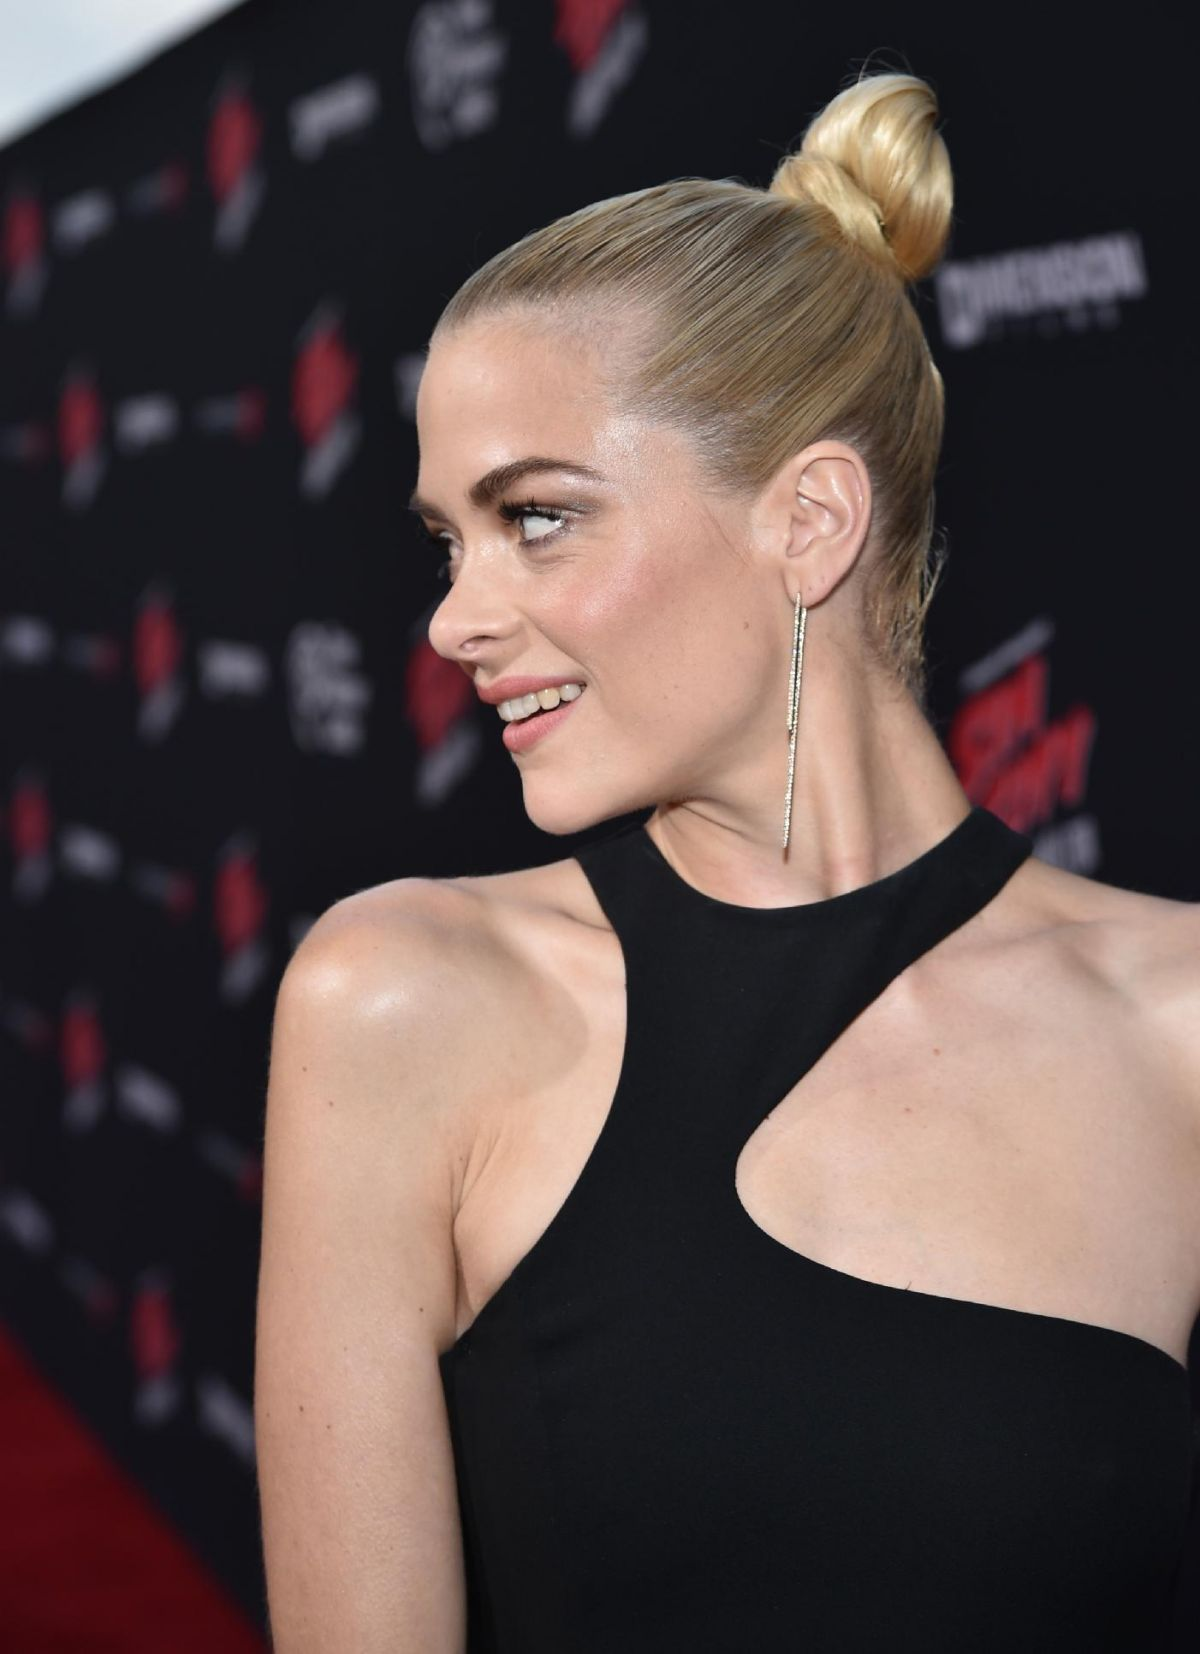 jaime king at sin city: a dame to kill for premiere in los angeles